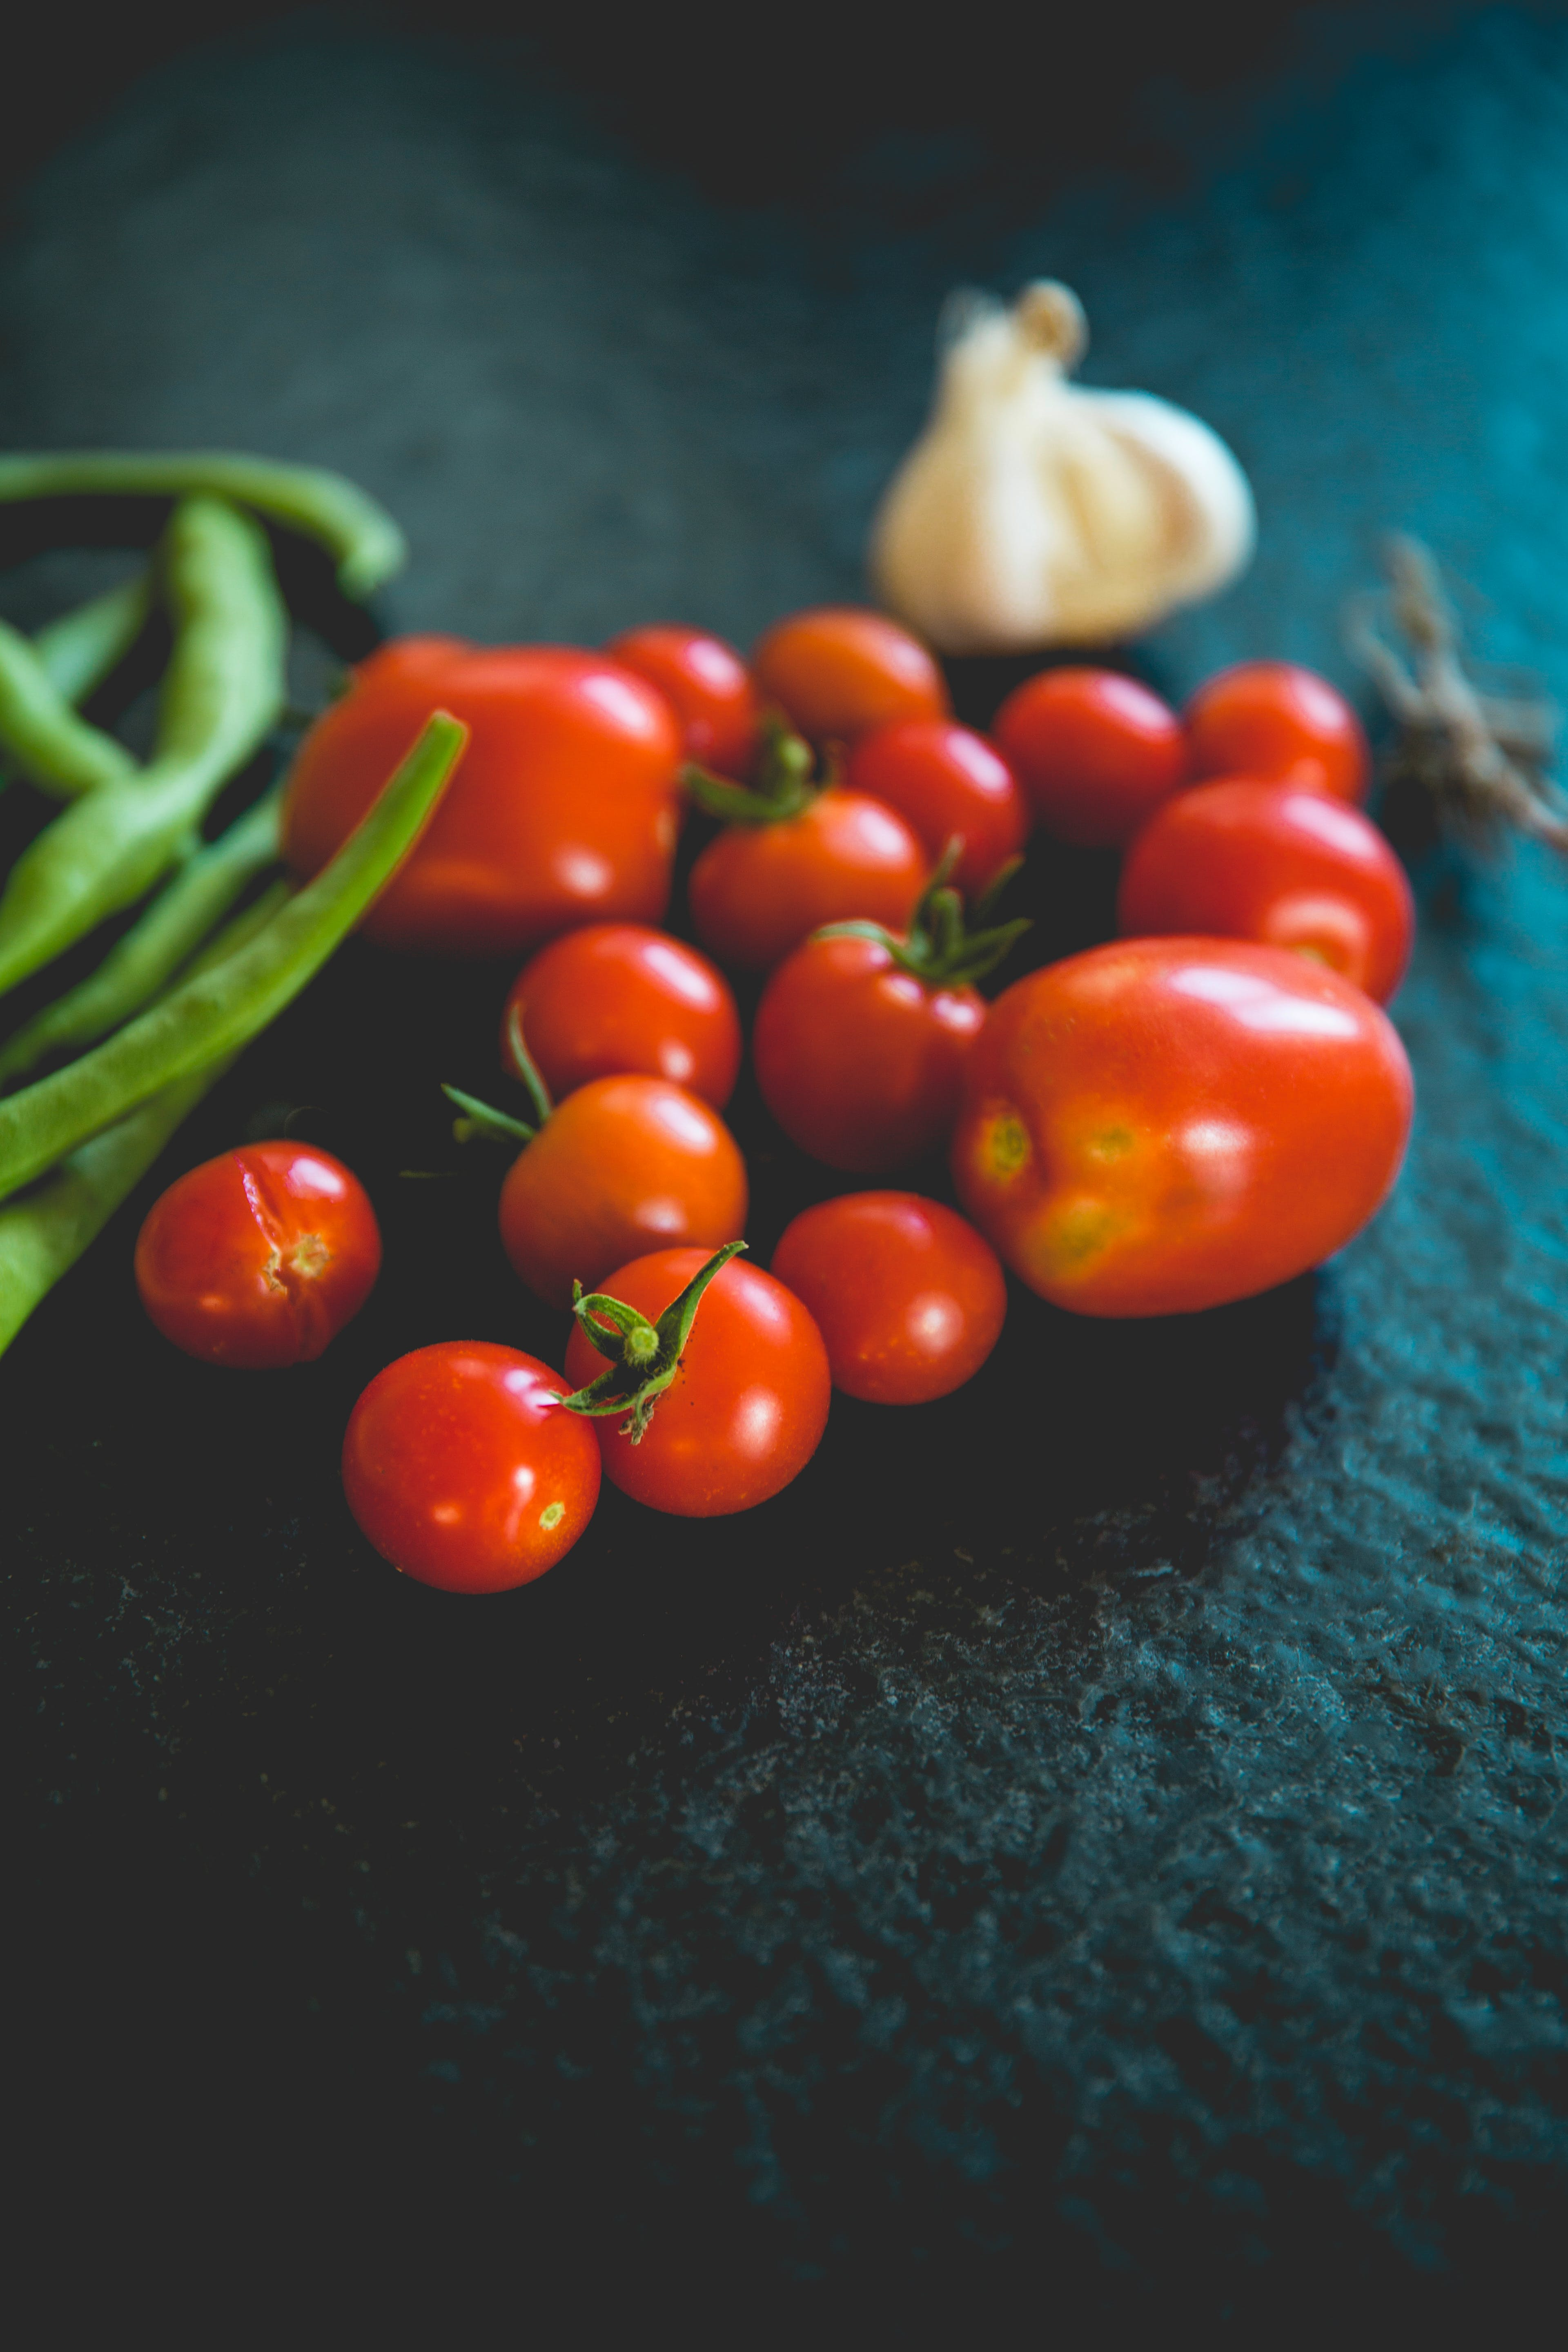 Orange Tomatoes in Shallow Focus Photography